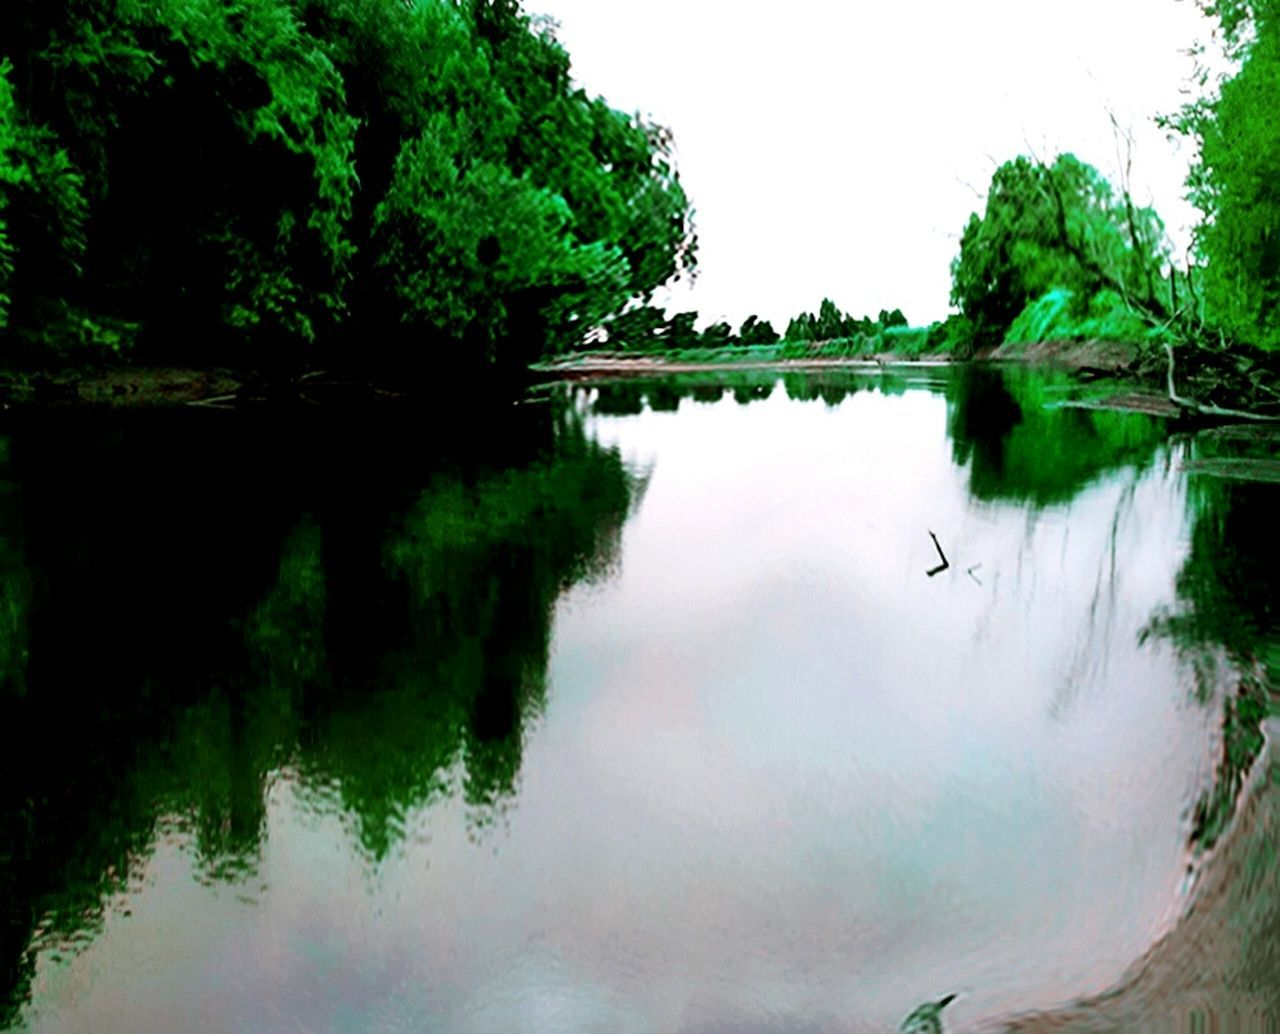 tree, water, reflection, nature, lake, beauty in nature, outdoors, day, no people, bird, animal themes, scenics, sky